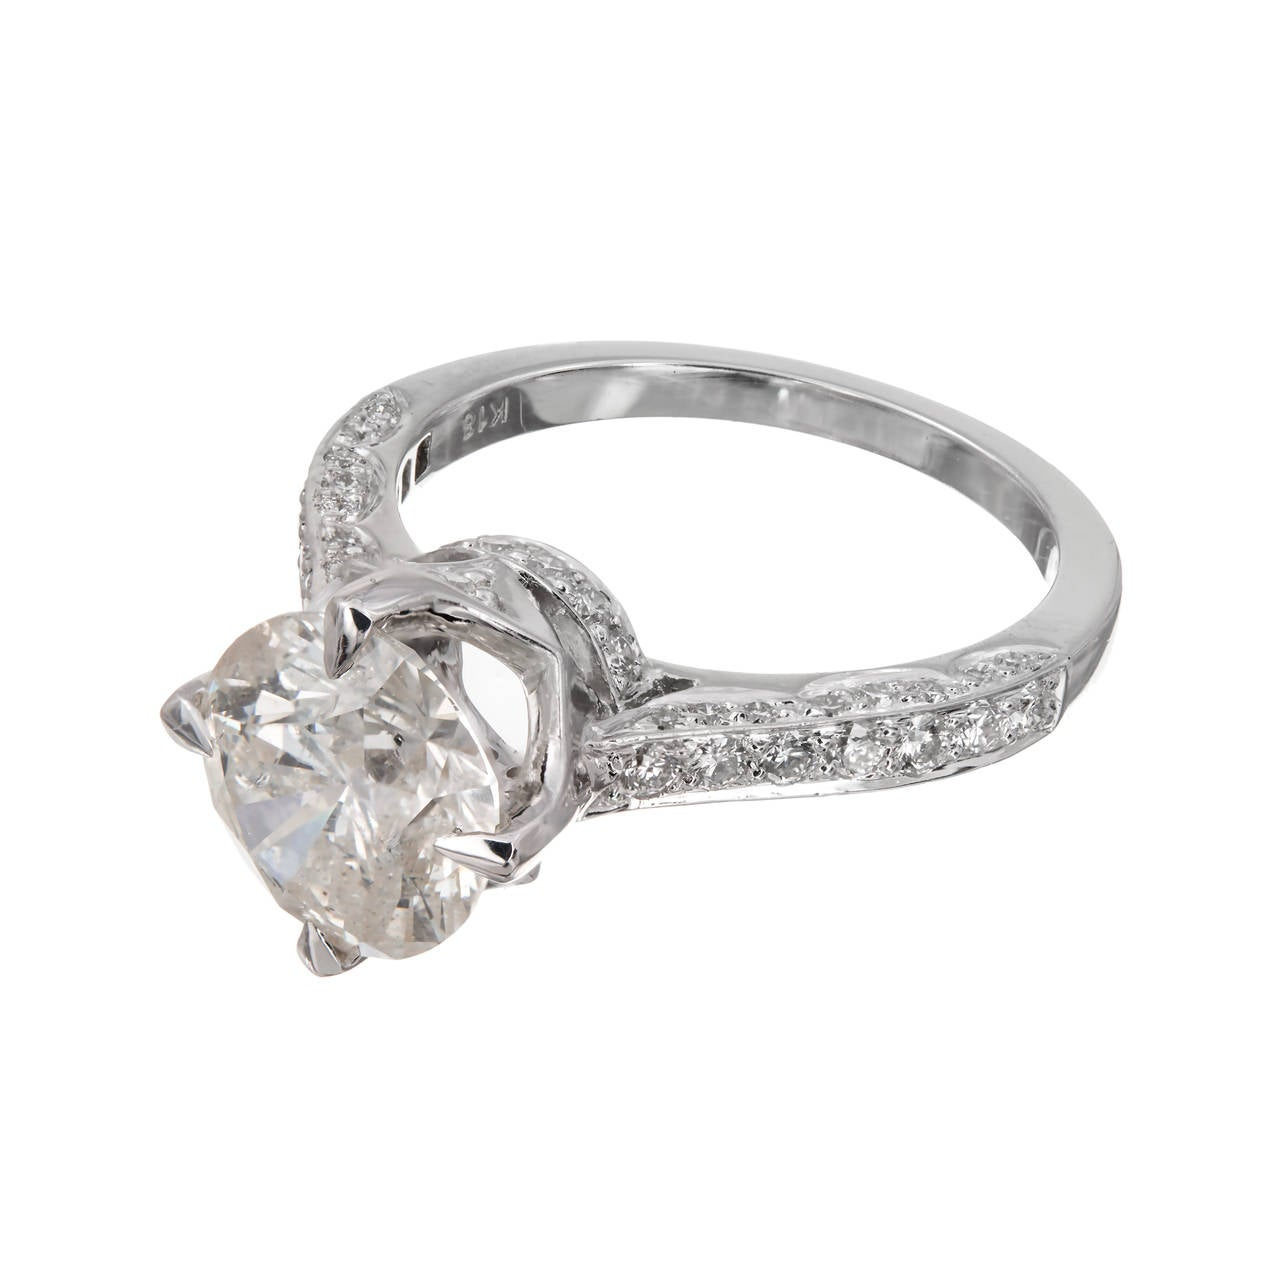 Round Cut 2.51 Carat Round Diamond Gold Solitaire Engagement Ring For Sale